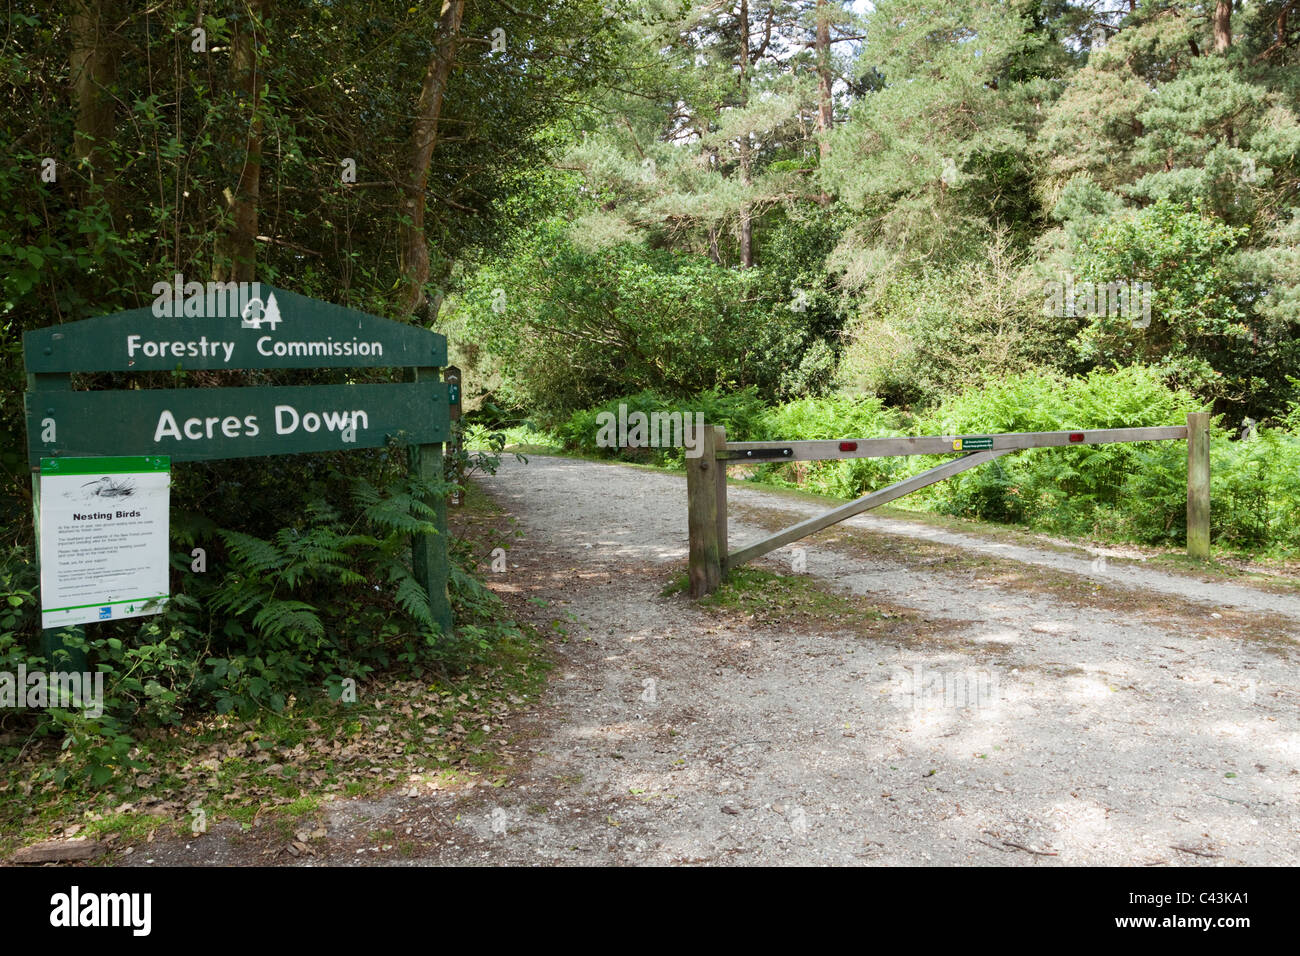 Forestry Commission sign, Acres Down, New Forest, Hampshire, Uk - Stock Image